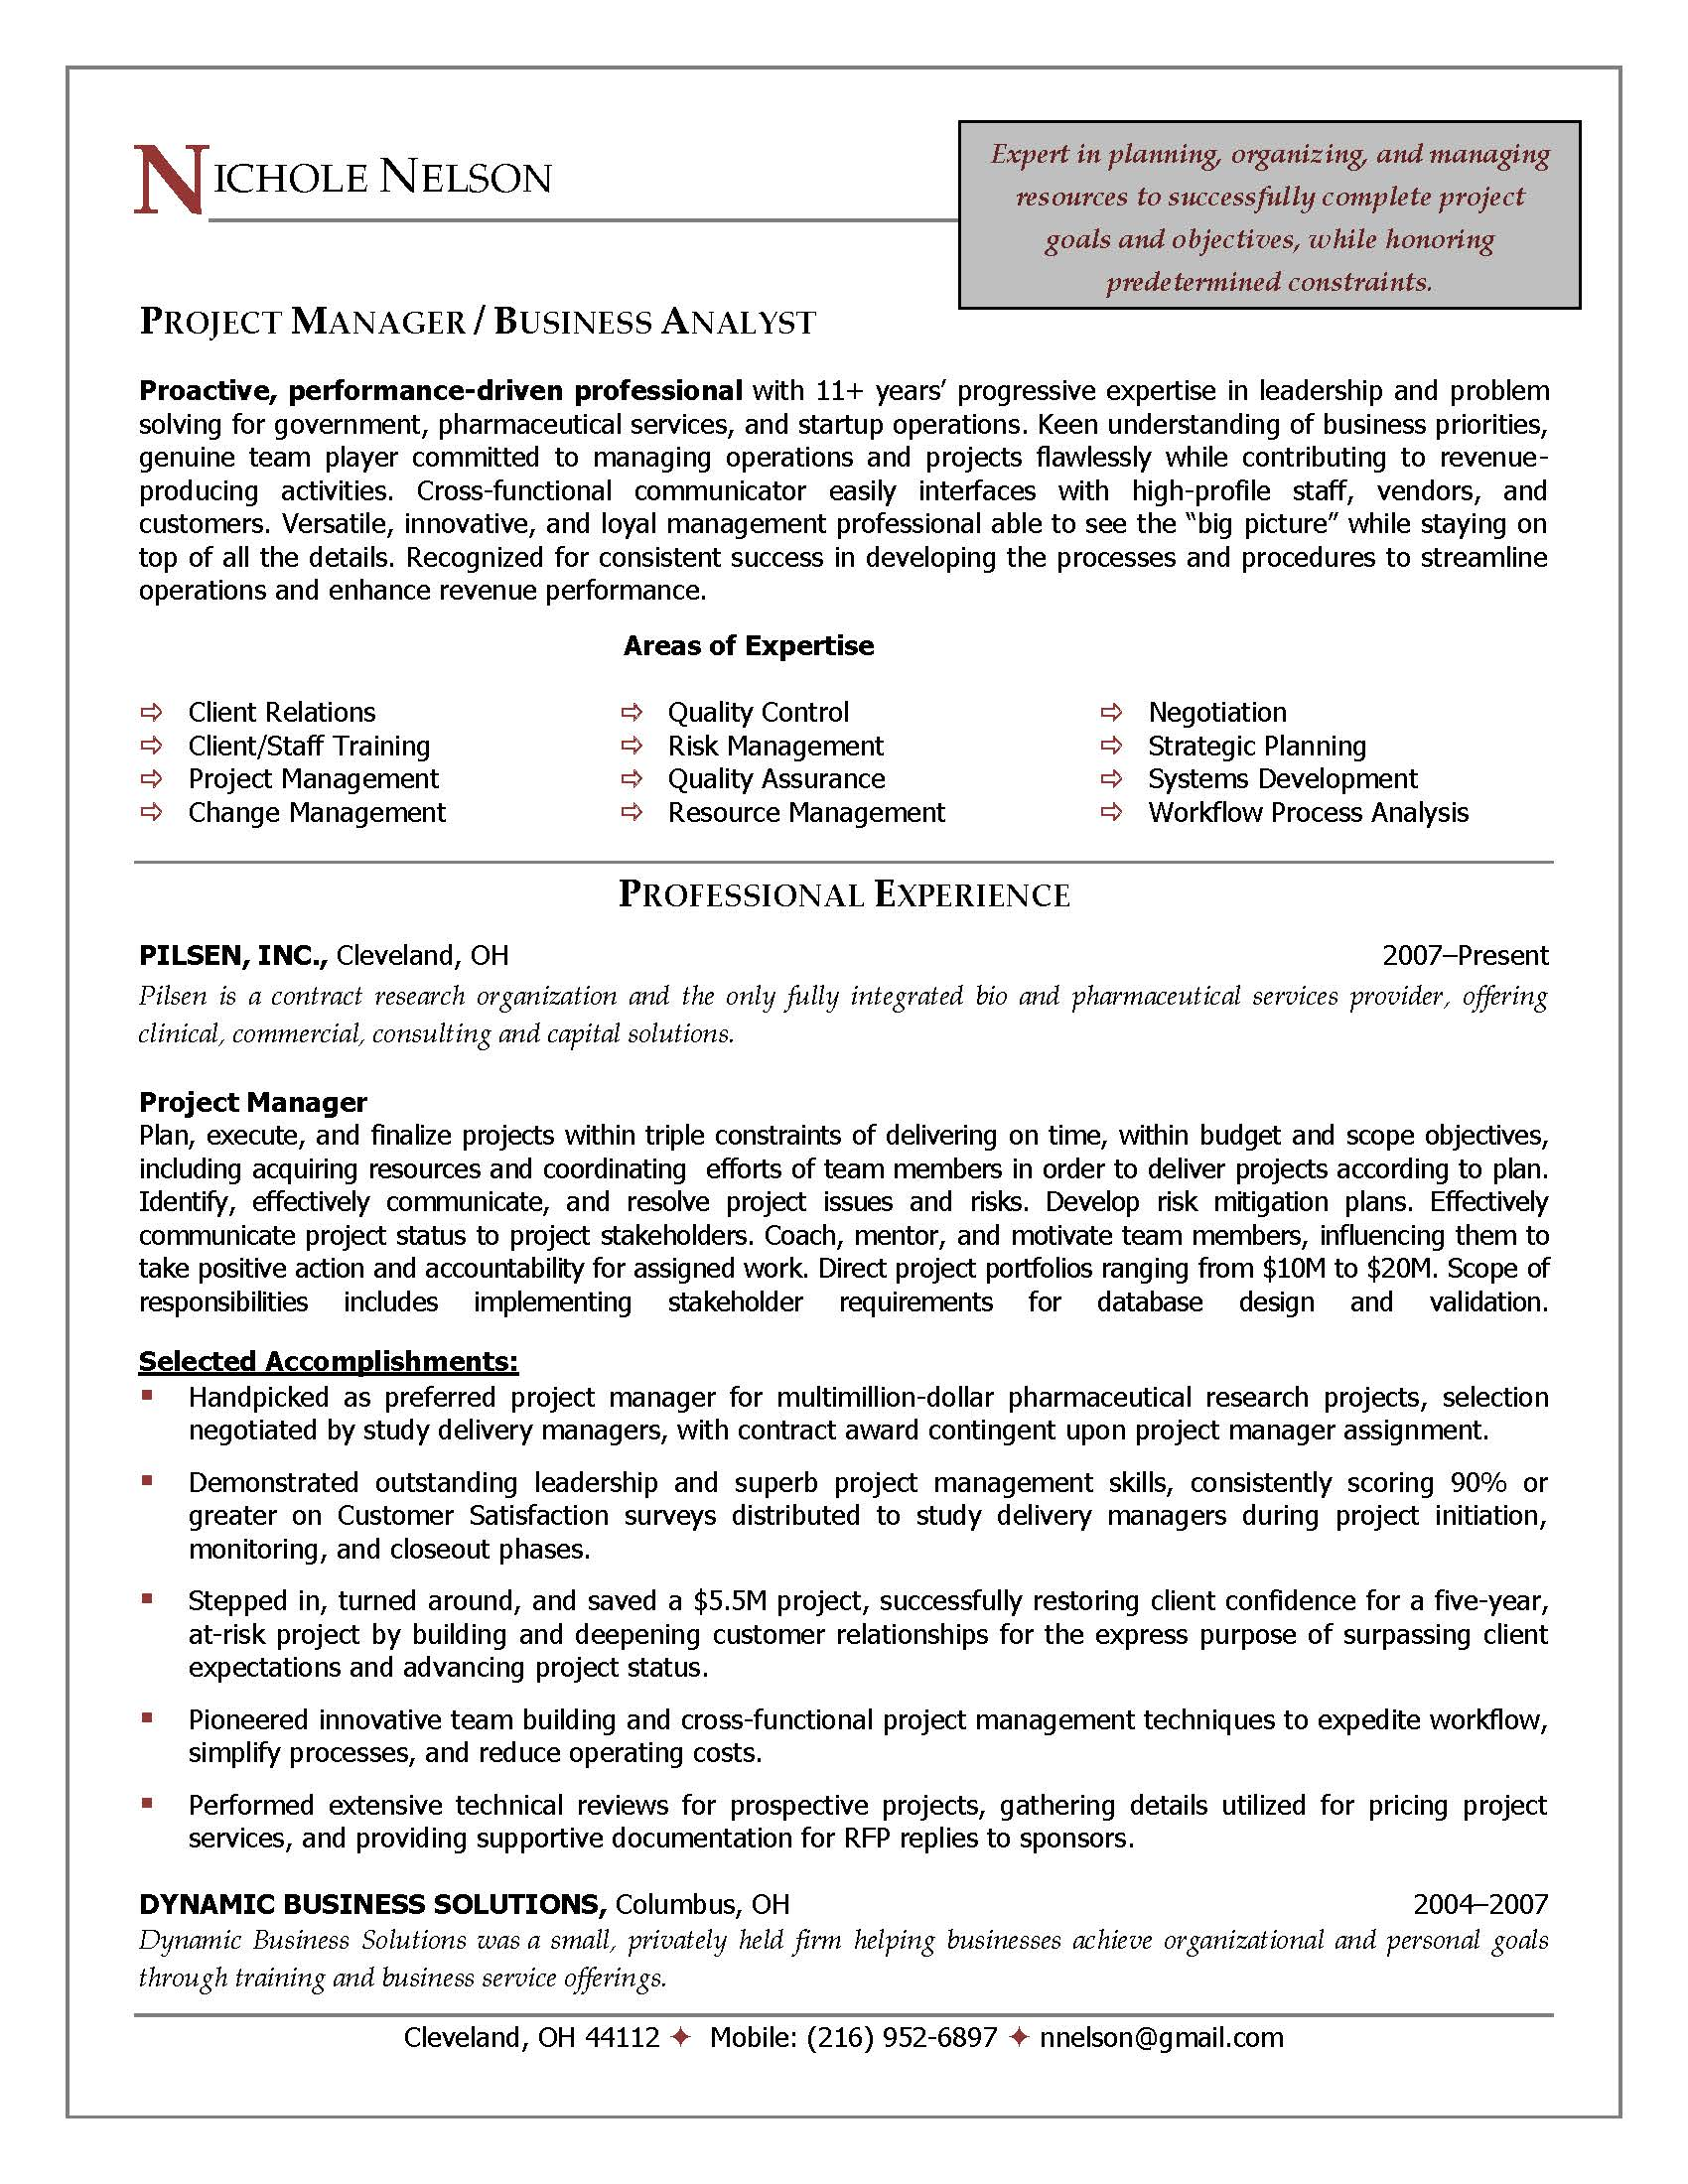 100 warehouse manager resume home for sale template certificate